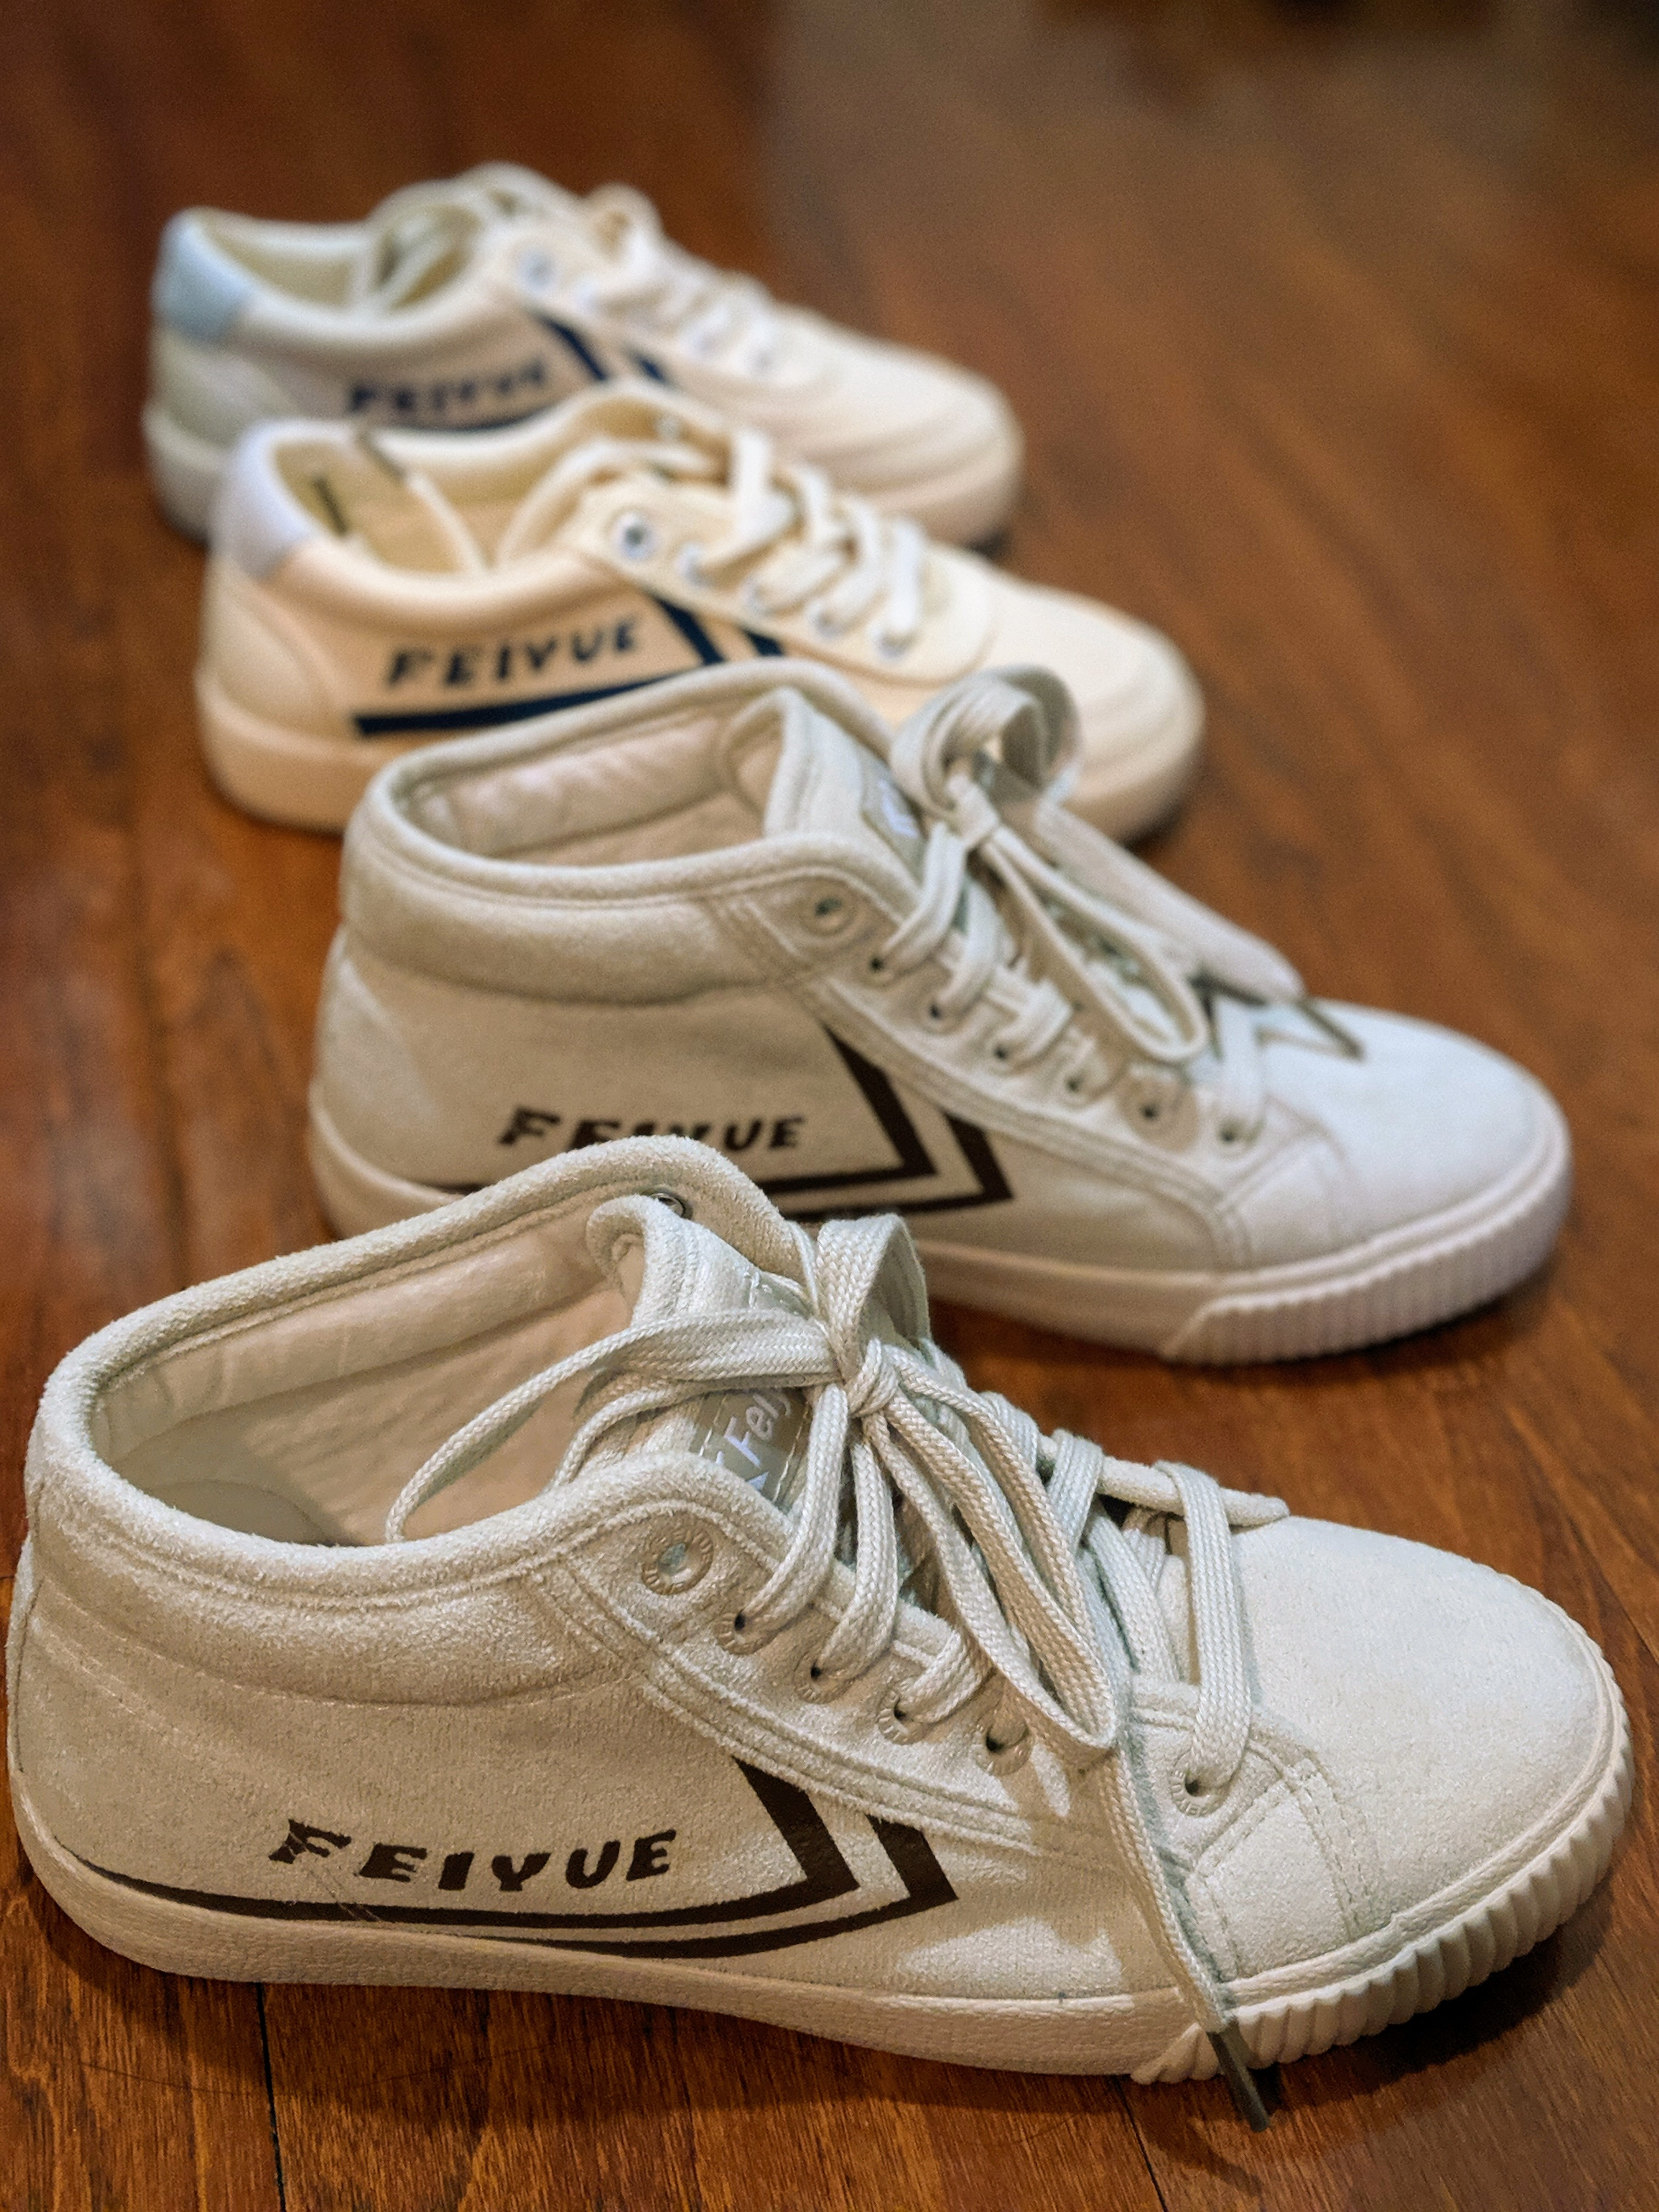 feiyue sneakers super useful high quality products to buy on Taobao